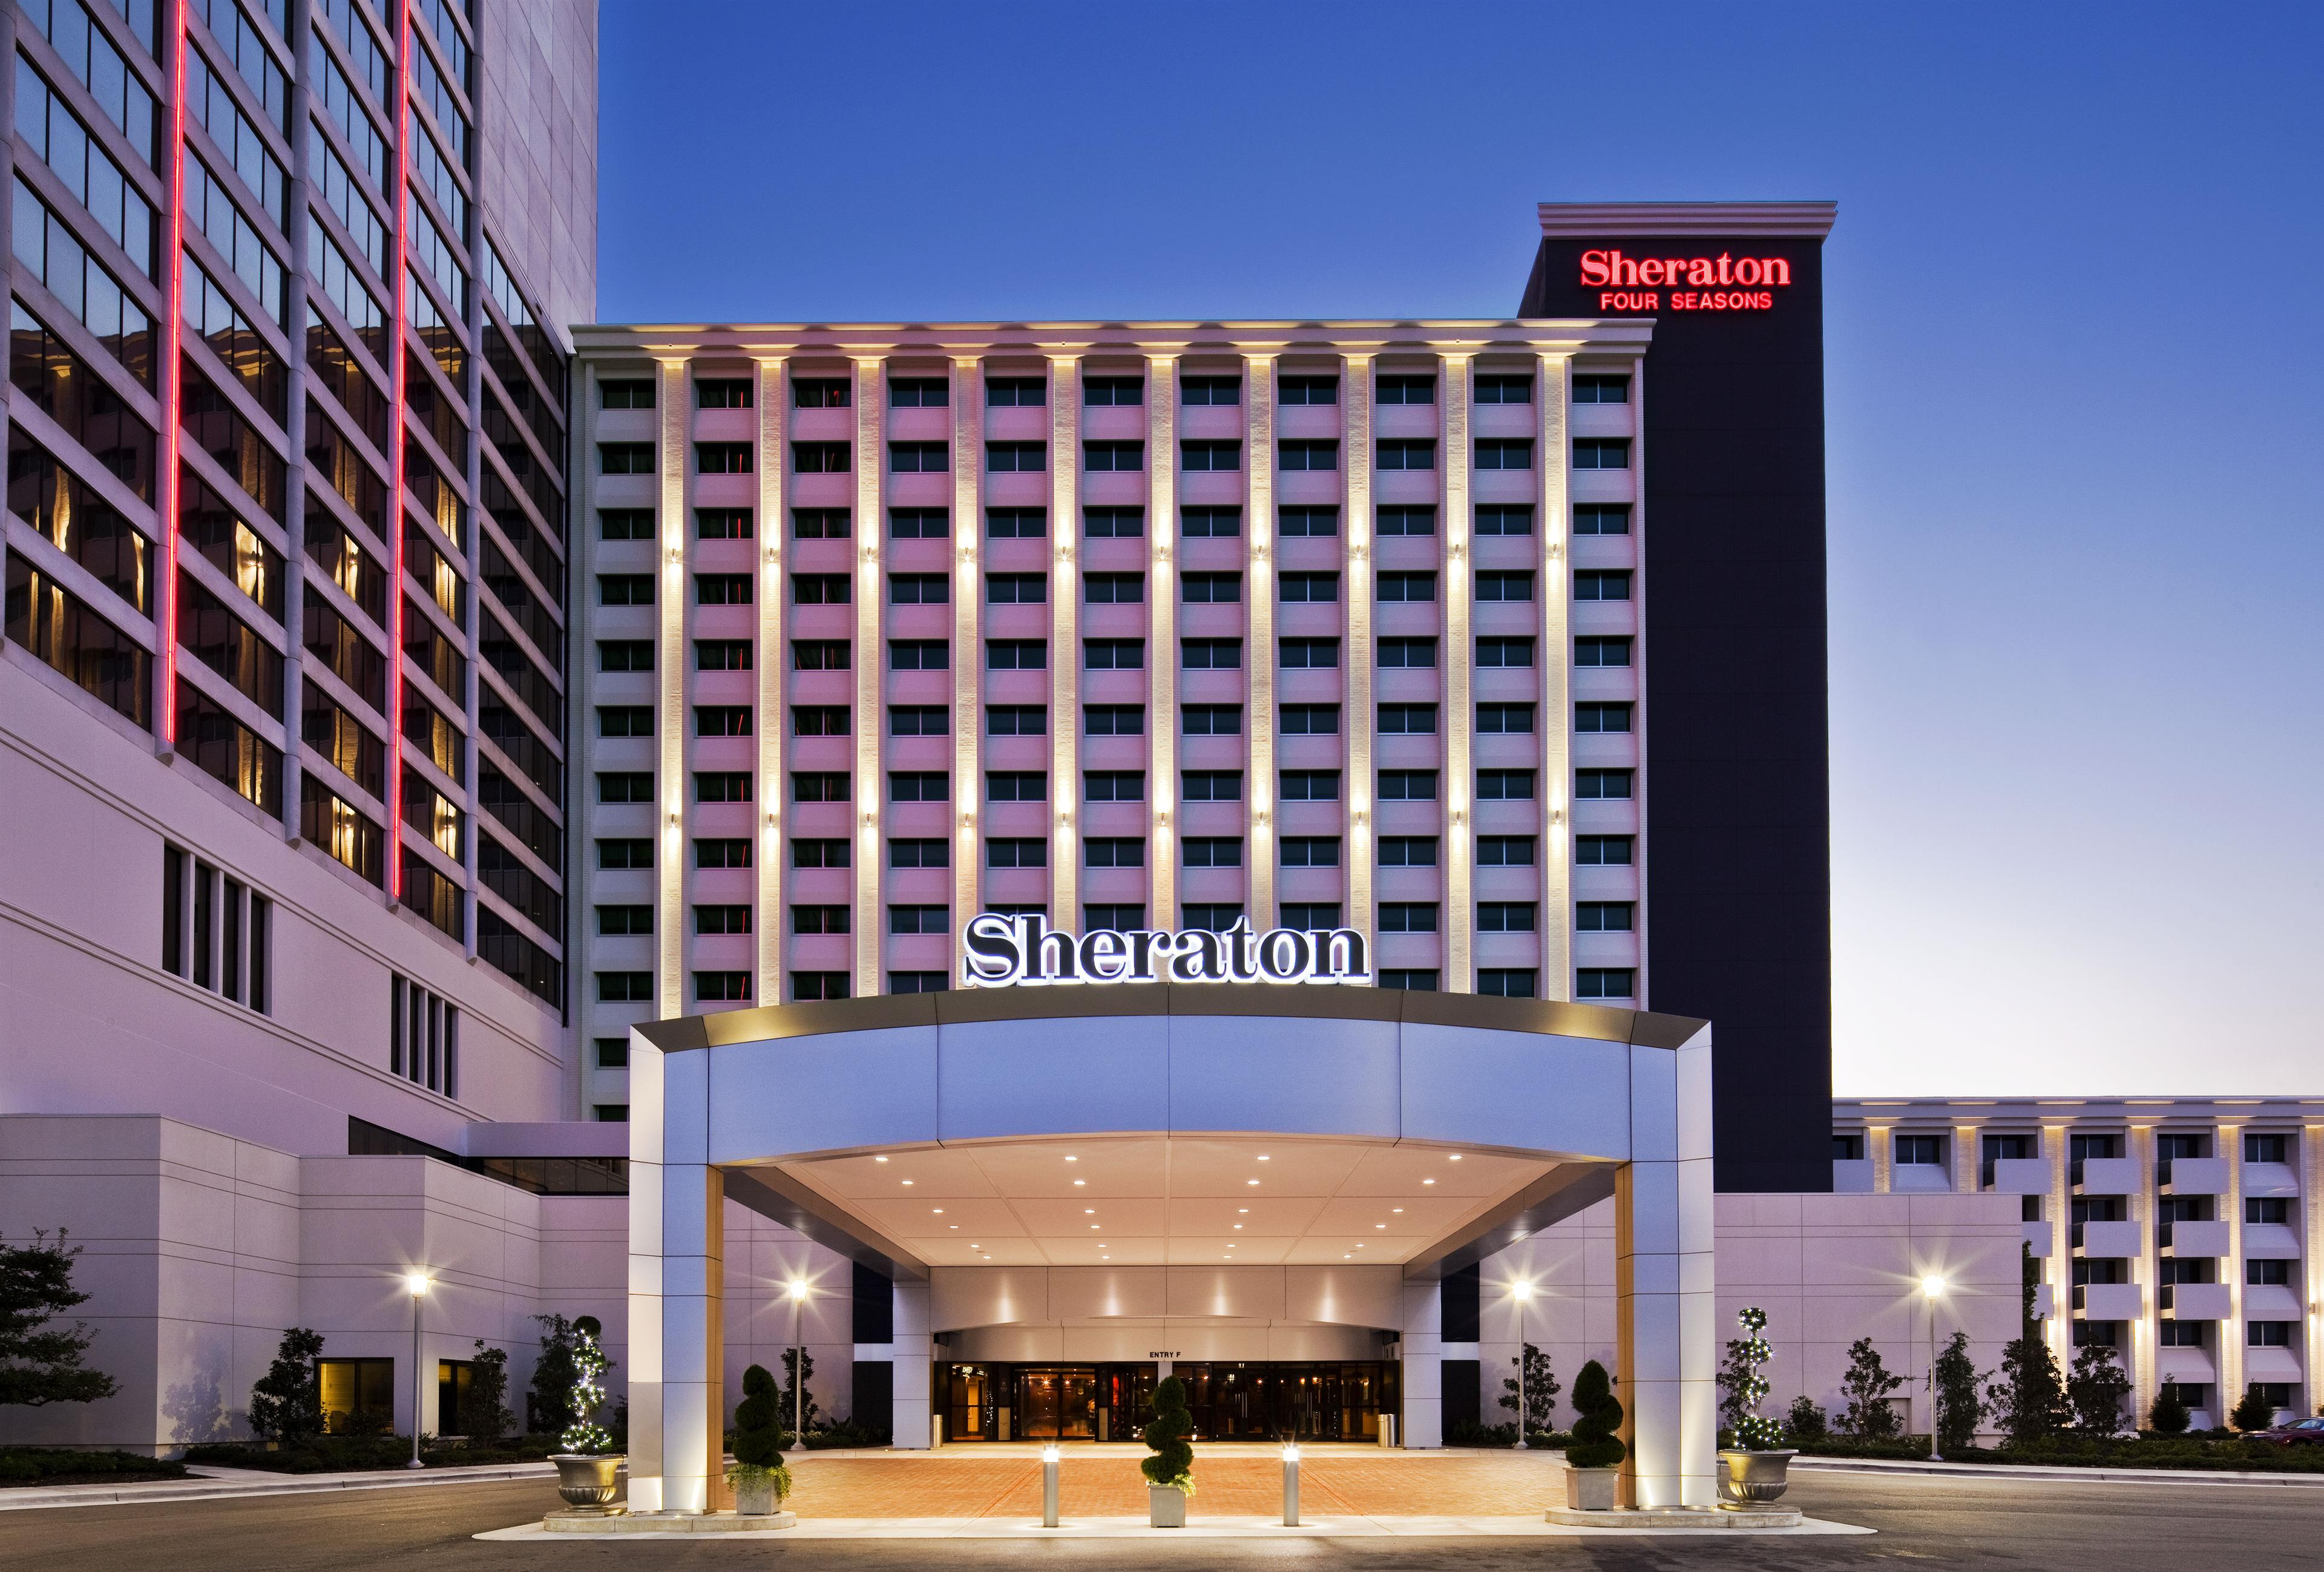 Plan your Hawaiian vacation to Maui, Oahu, the Big Island, or Kauai at any of our Sheraton, Westin, Luxury Collection or St. Regis properties.